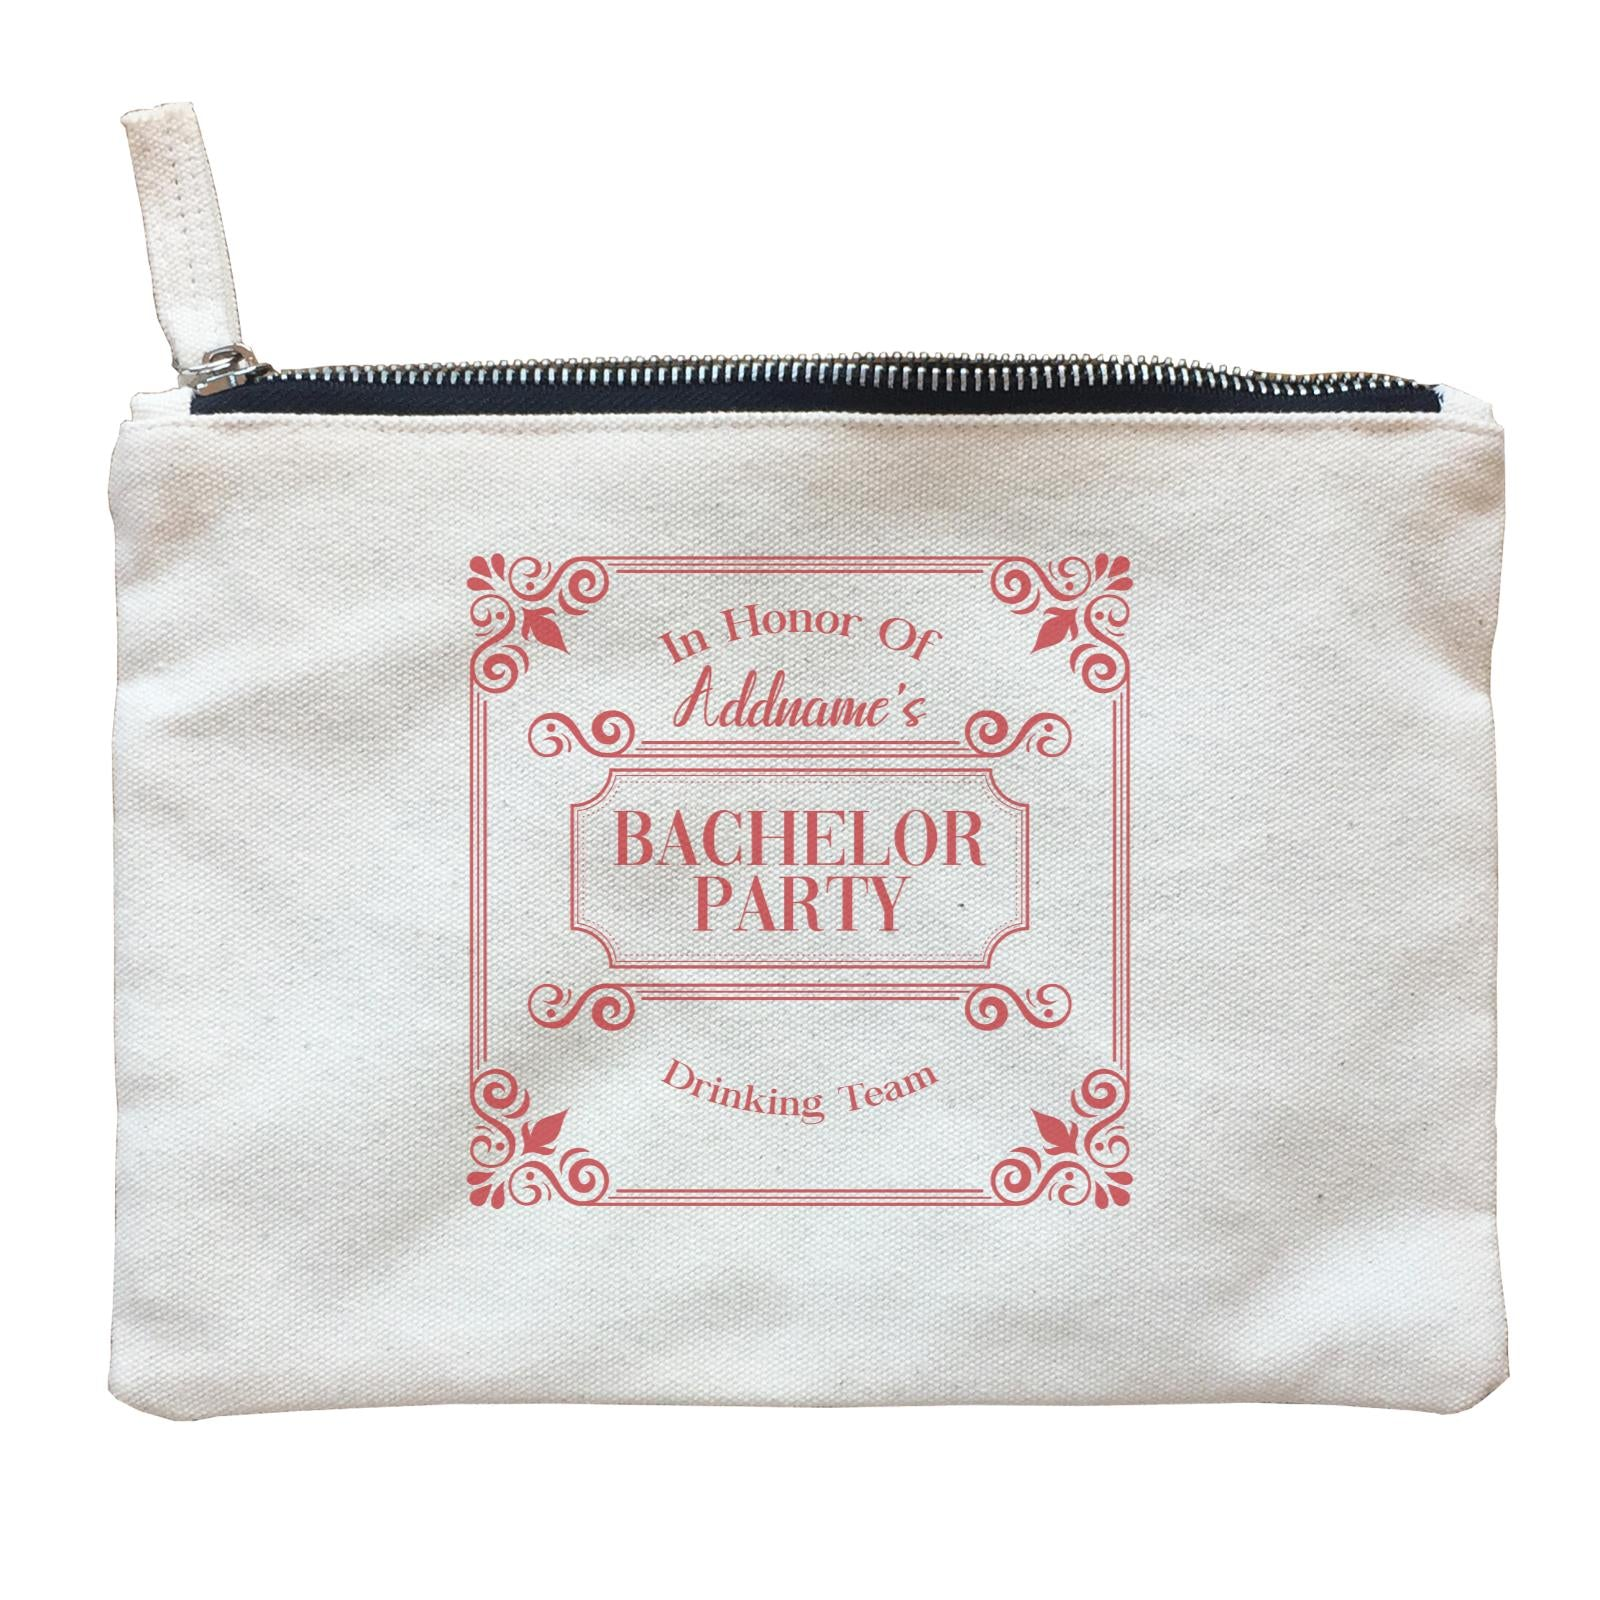 In Honor Of Bachelor Party Drinking Team Addname Zipper Pouch